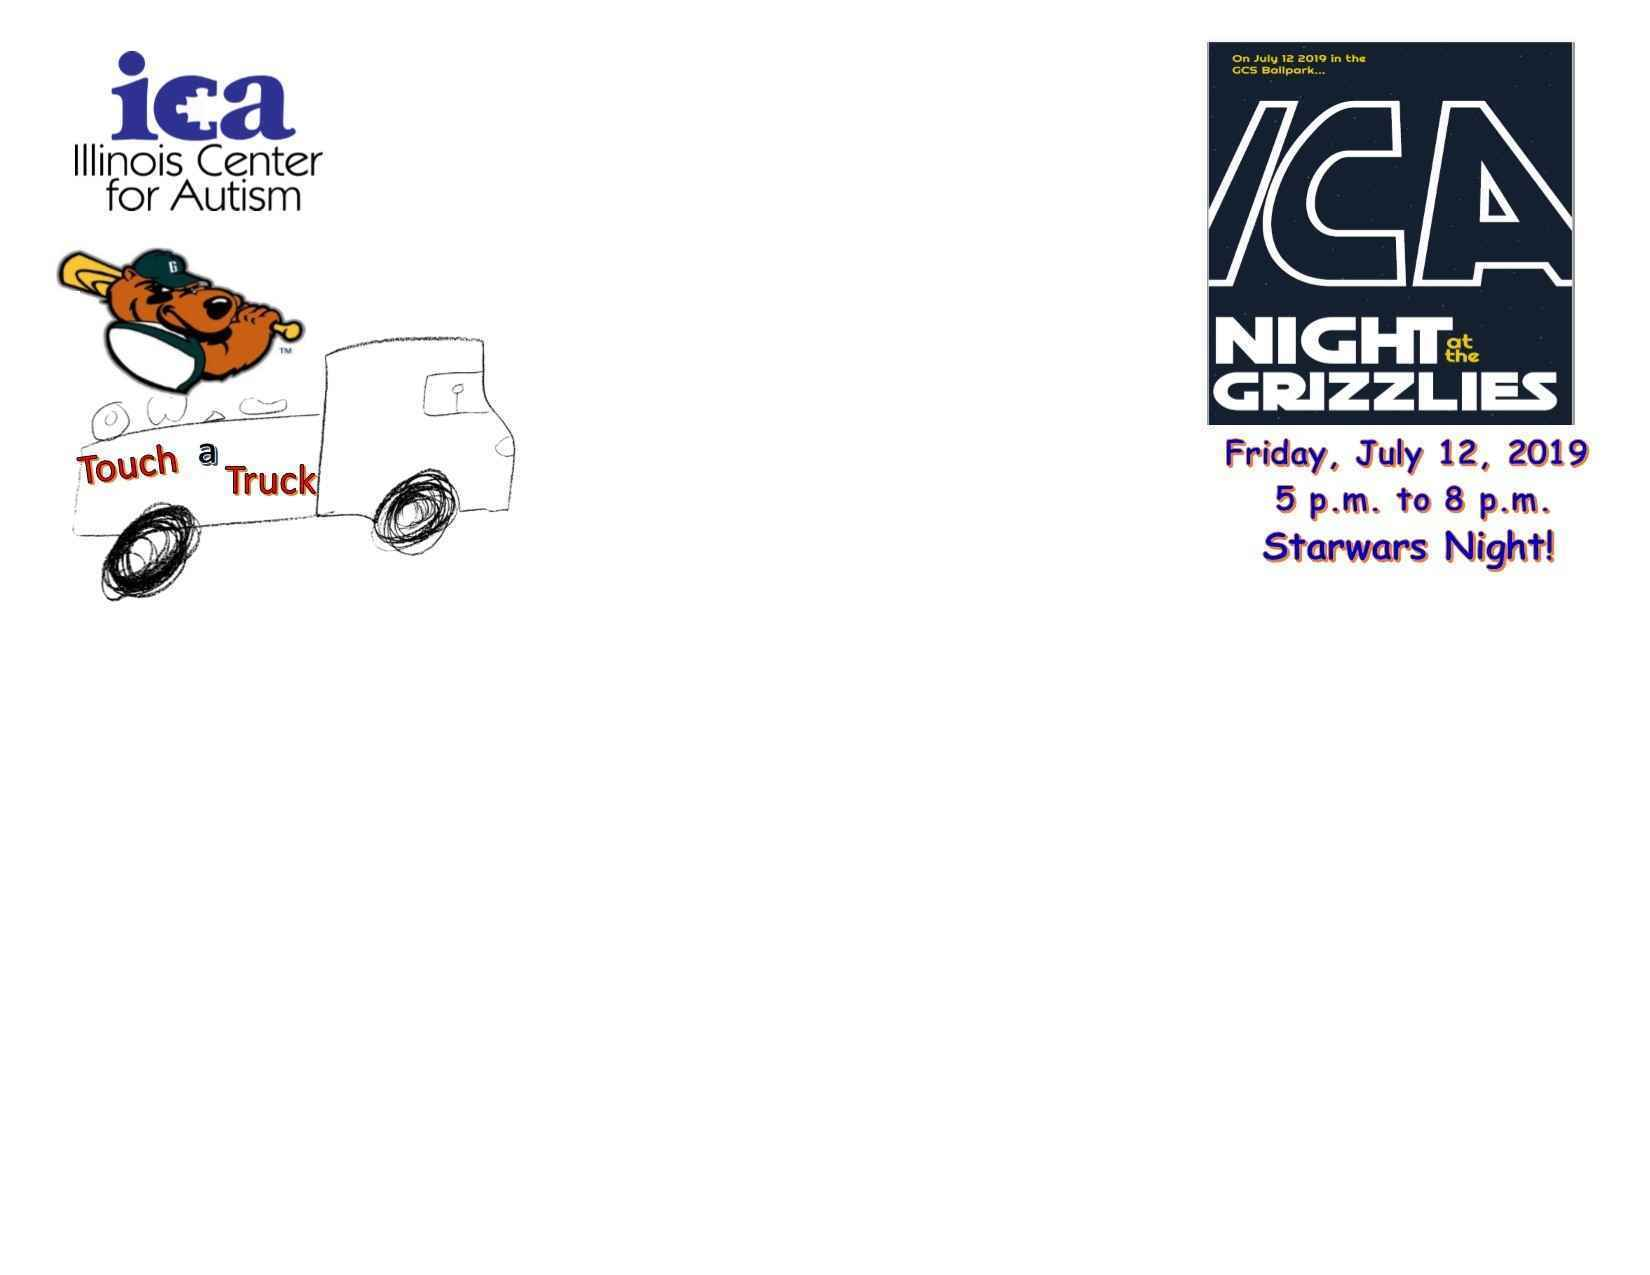 2019 Grizzlies/Touch a Truck Sponsor image